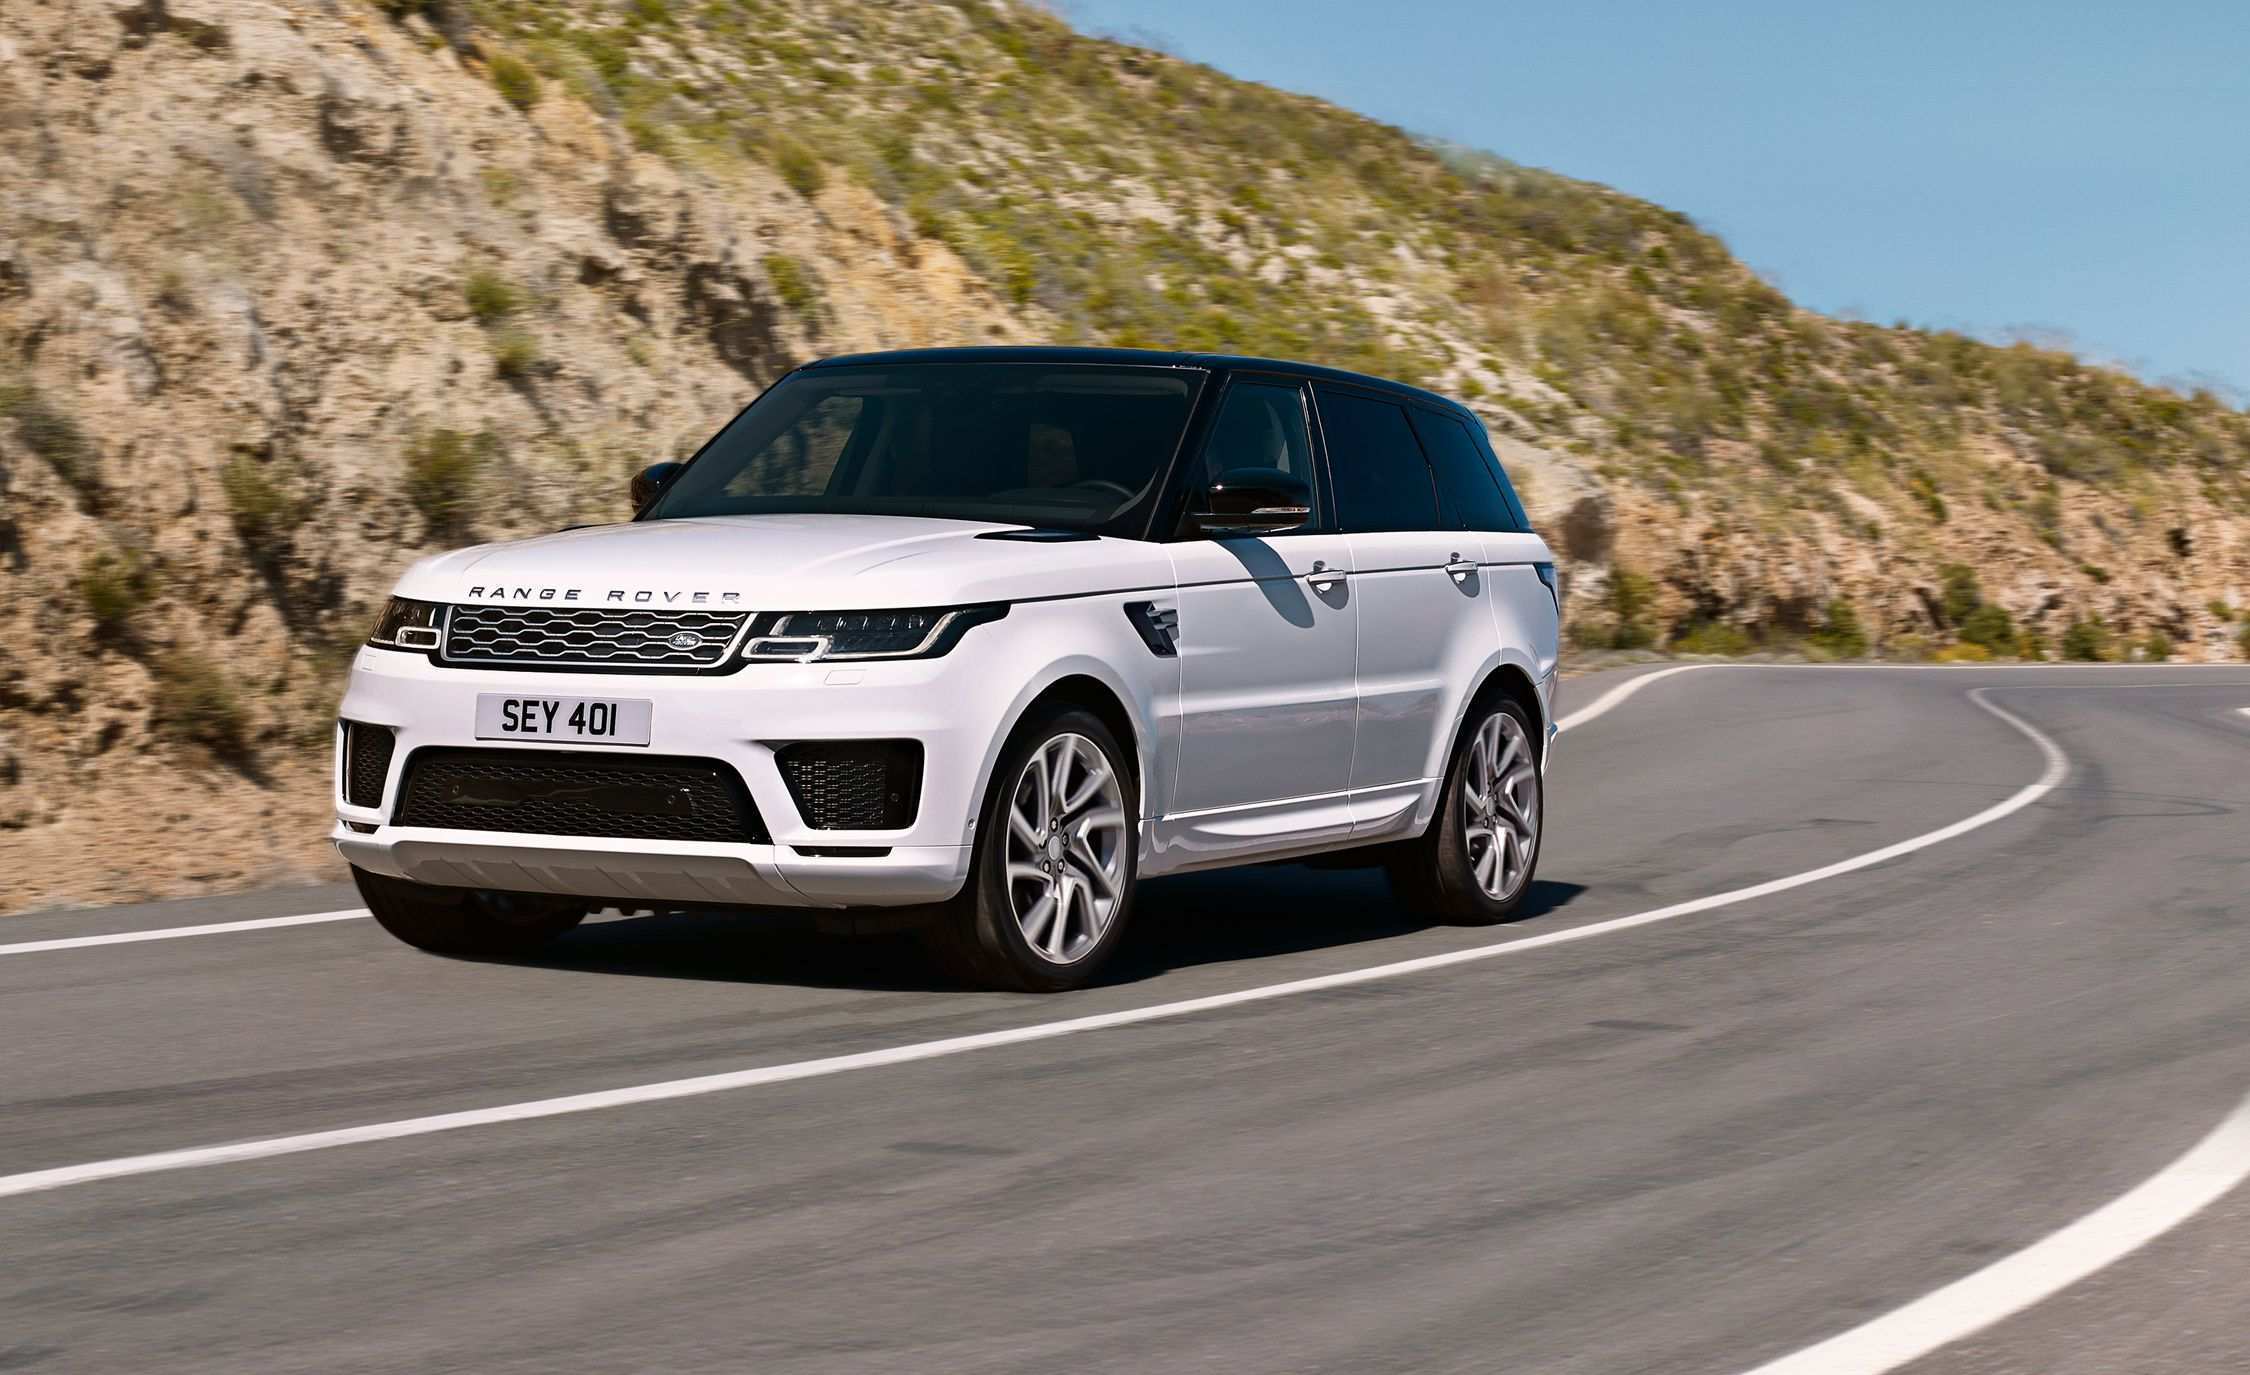 32 All New 2019 Land Rover Price History for 2019 Land Rover Price